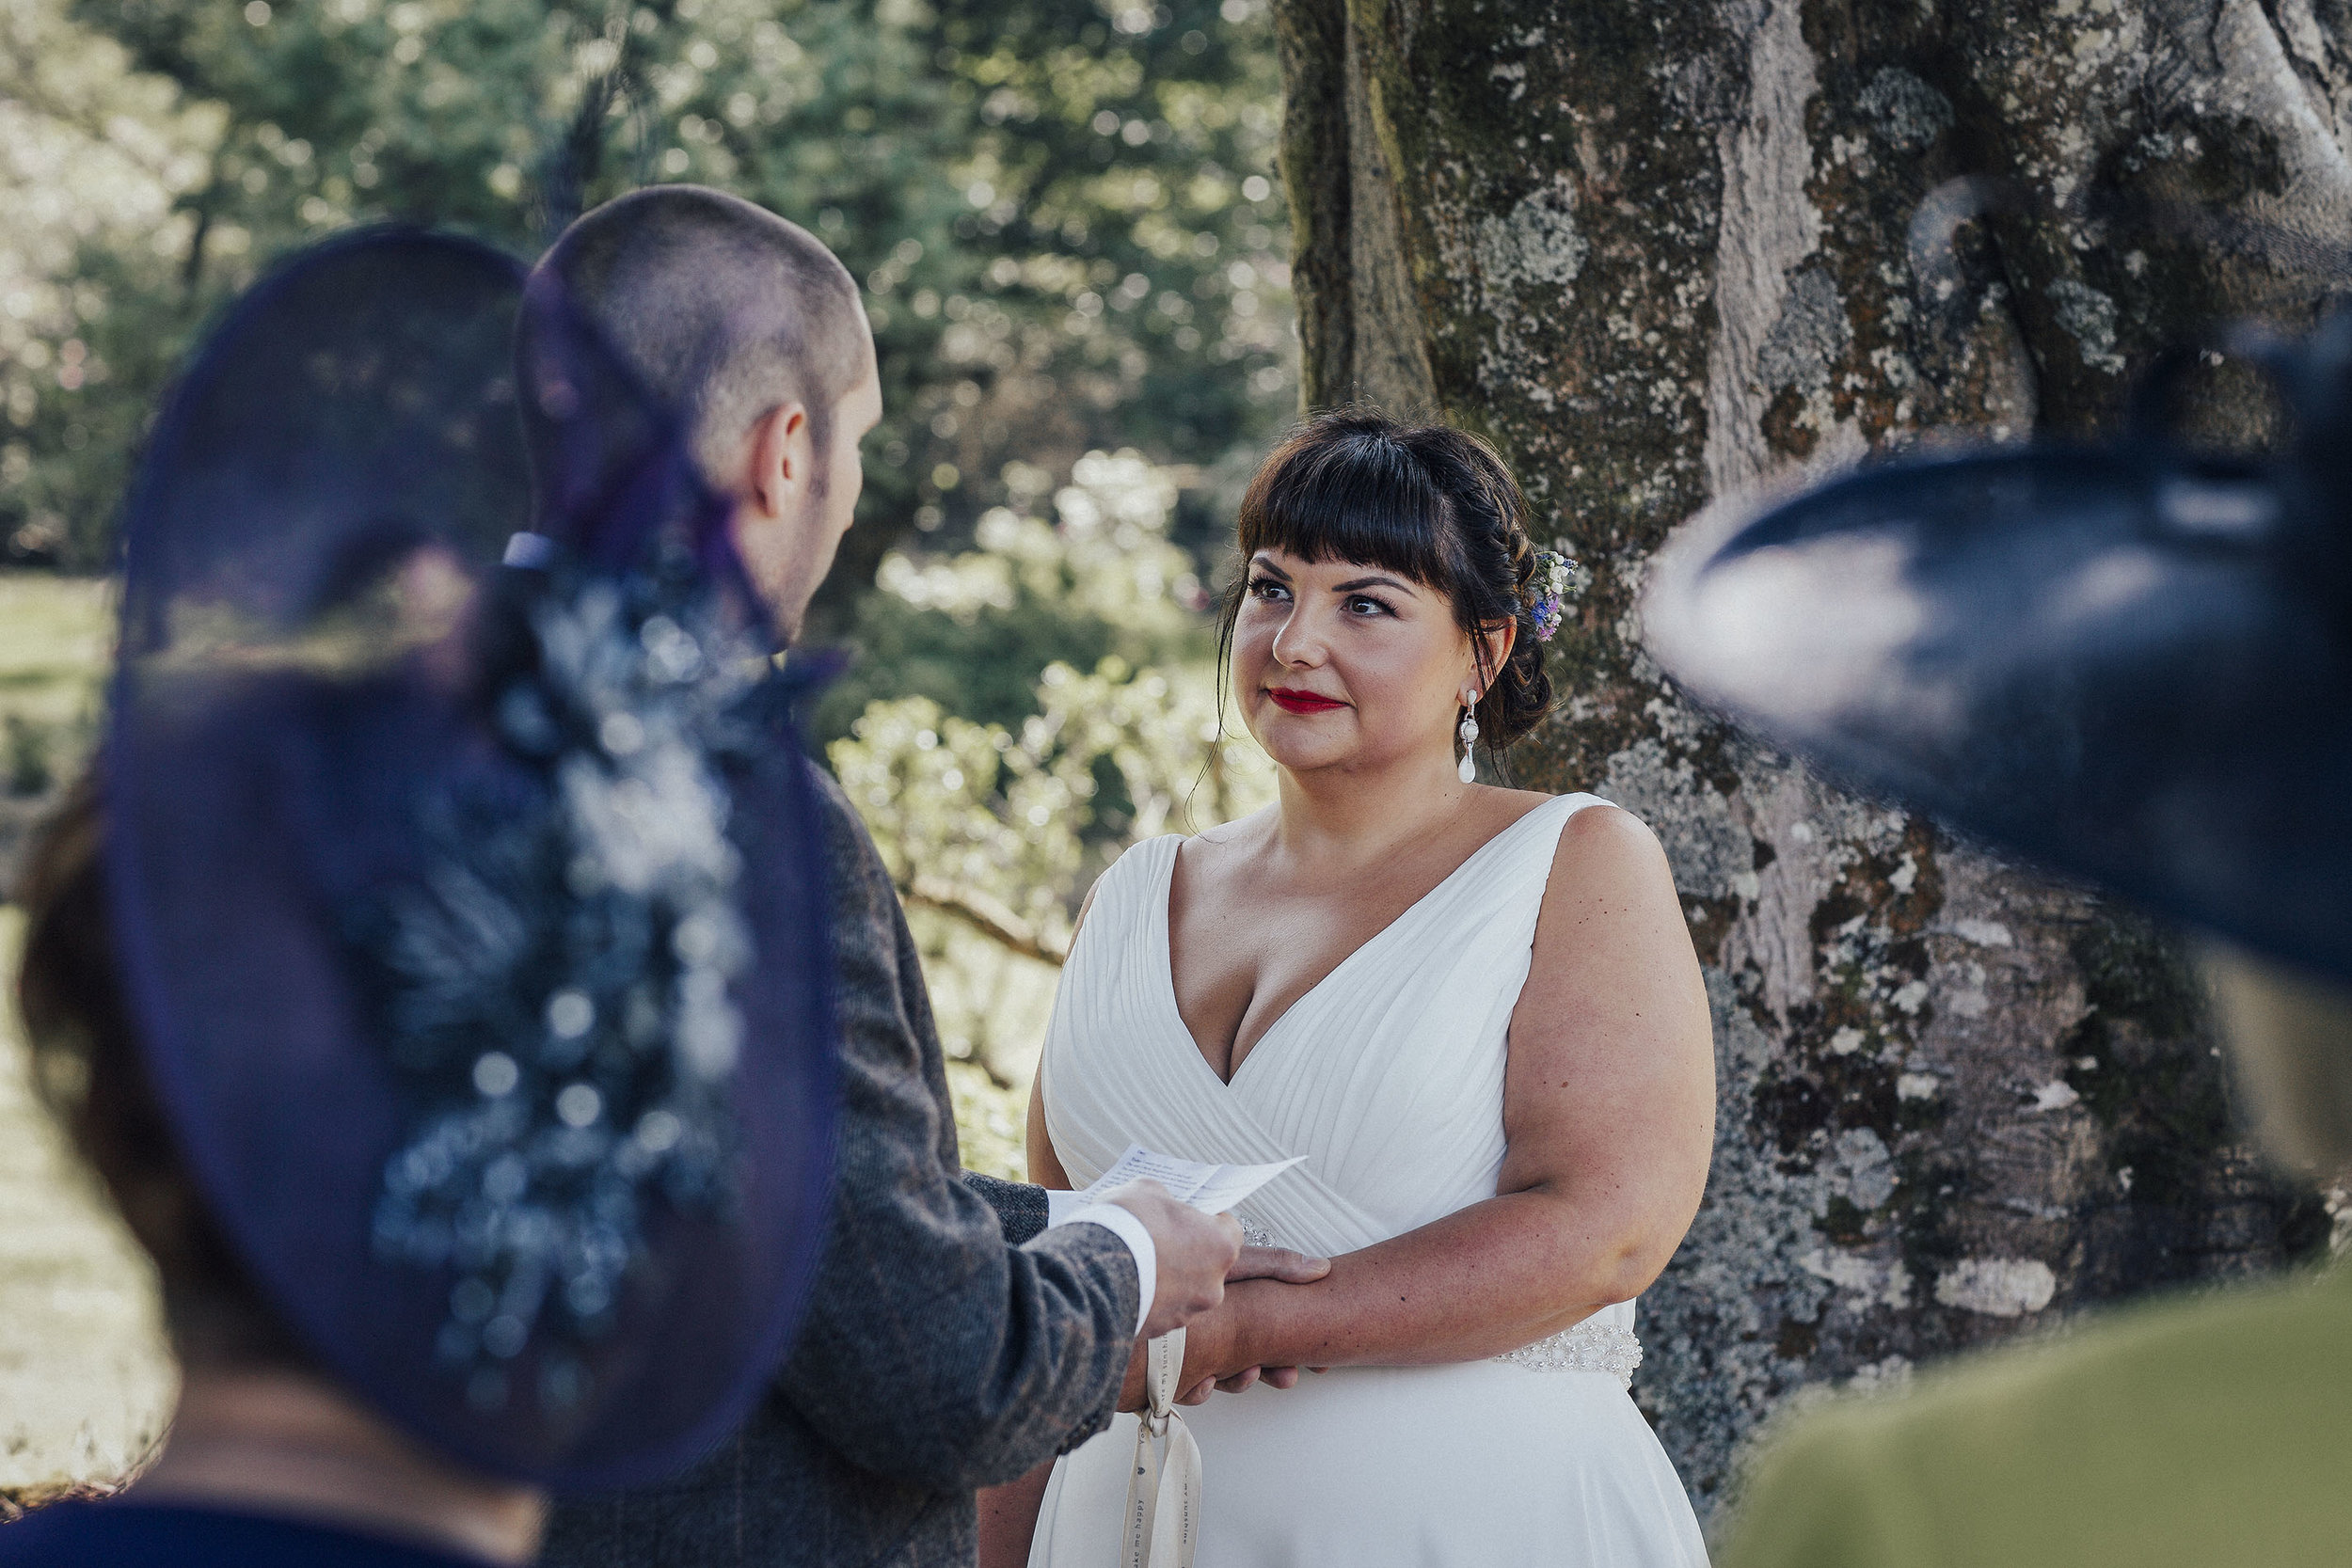 SCOTTISH_ELOPEMENT_PHOTOGRAPHER_PJ_PHILLIPS_PHOTOGRAPHY_63.jpg